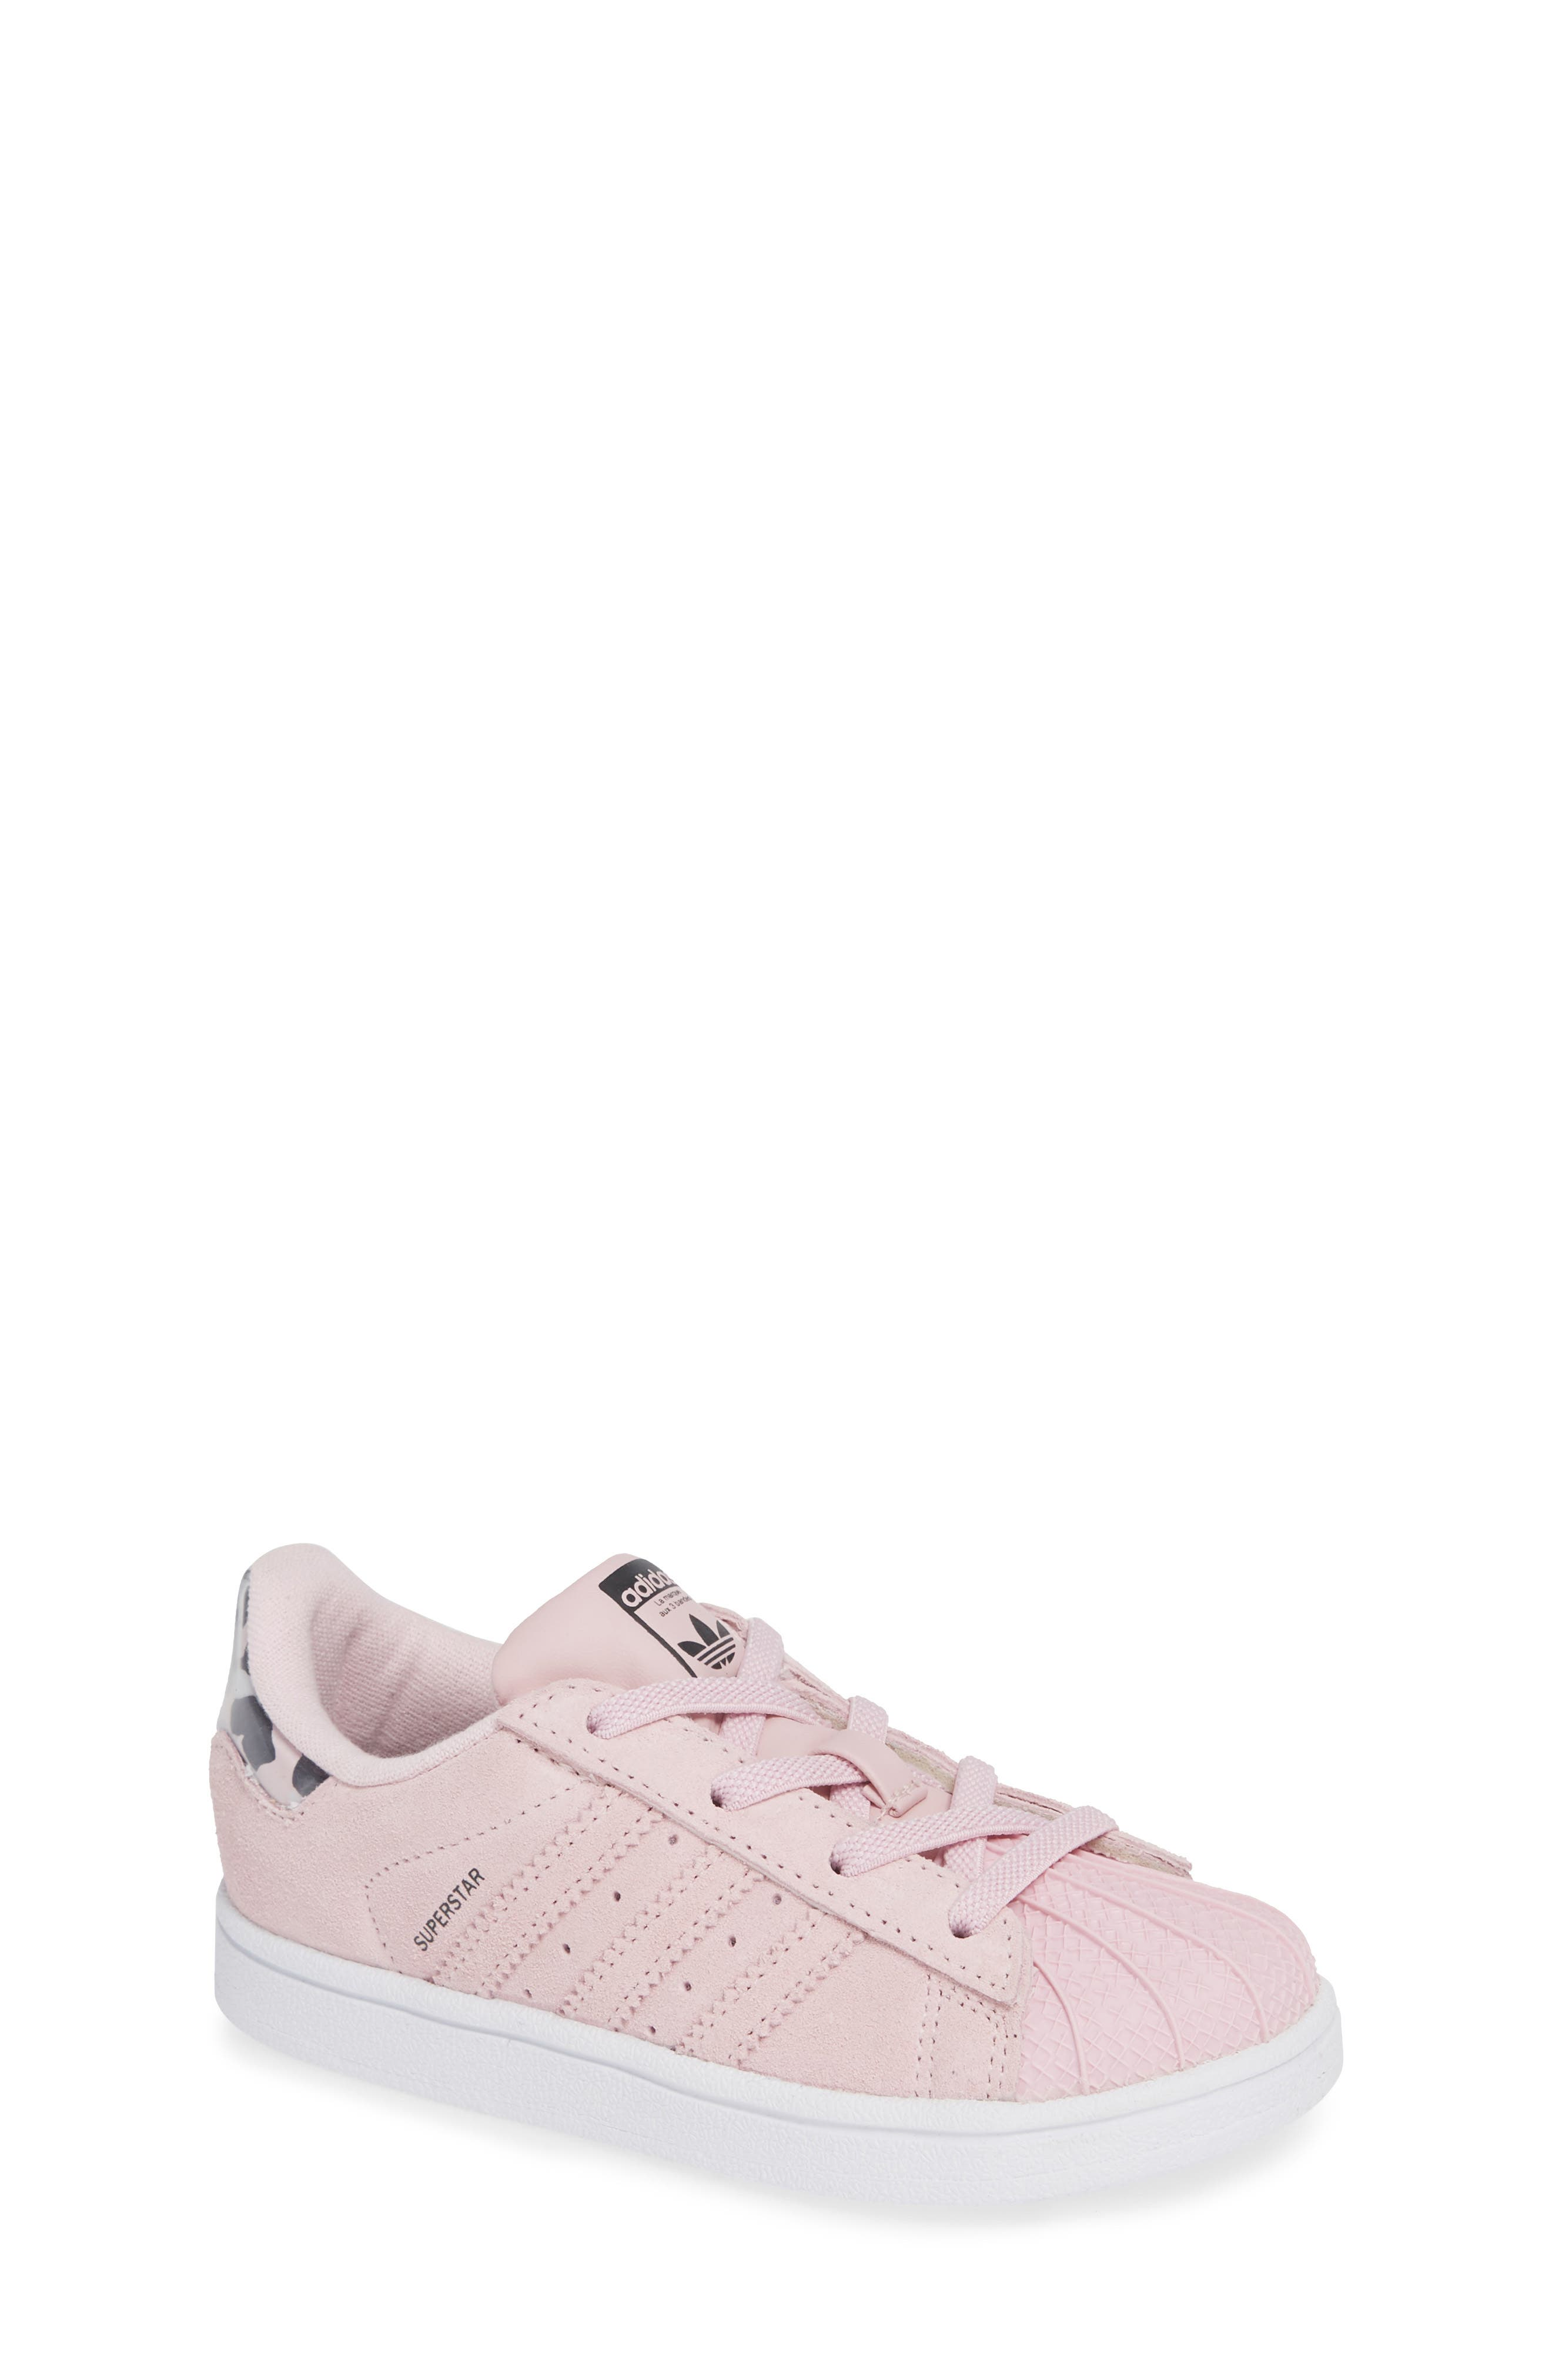 Superstar Low Top Sneaker,                             Main thumbnail 1, color,                             CLEAR PINK/ WHITE